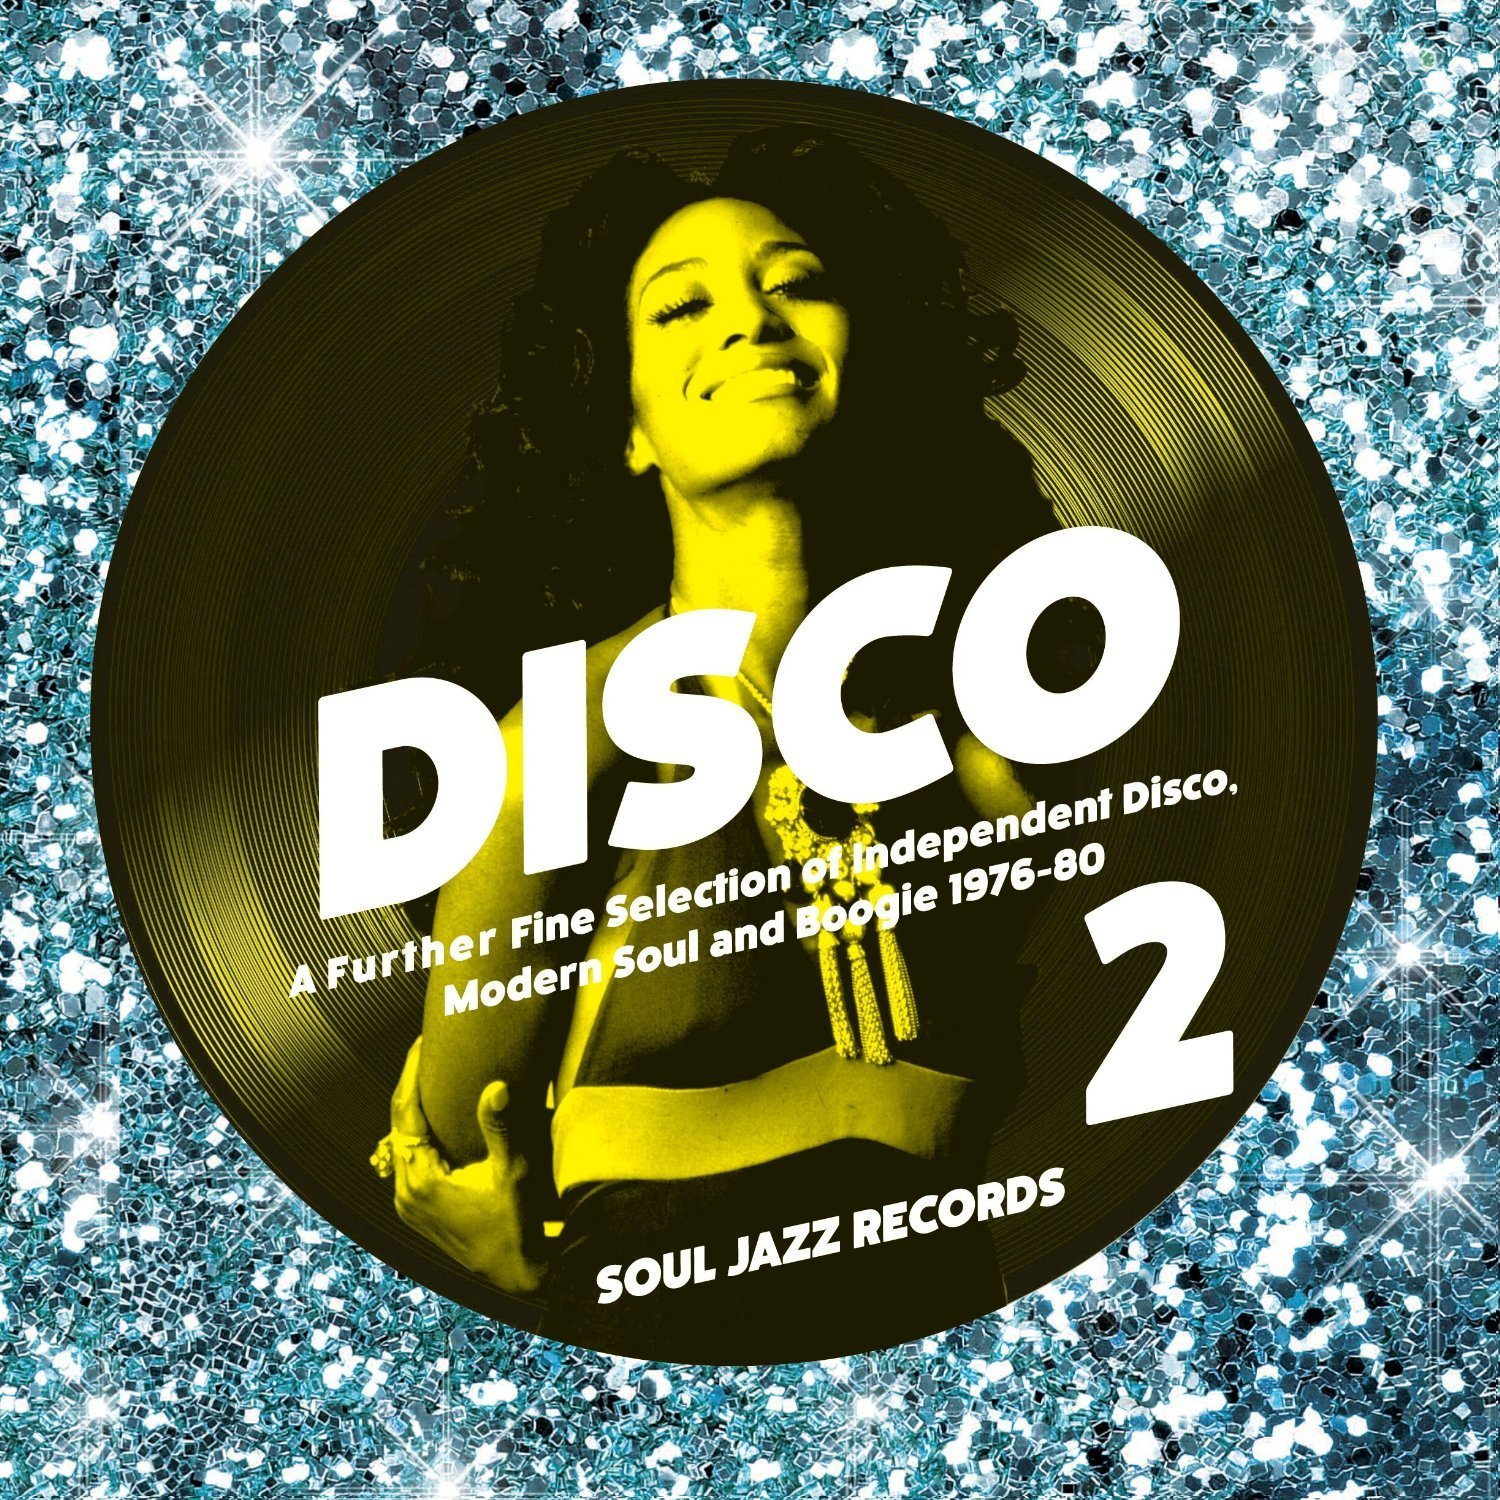 DISCO 2 - A FURTHER SELECTION OF INDEPENDENT DISCO-RECORD A